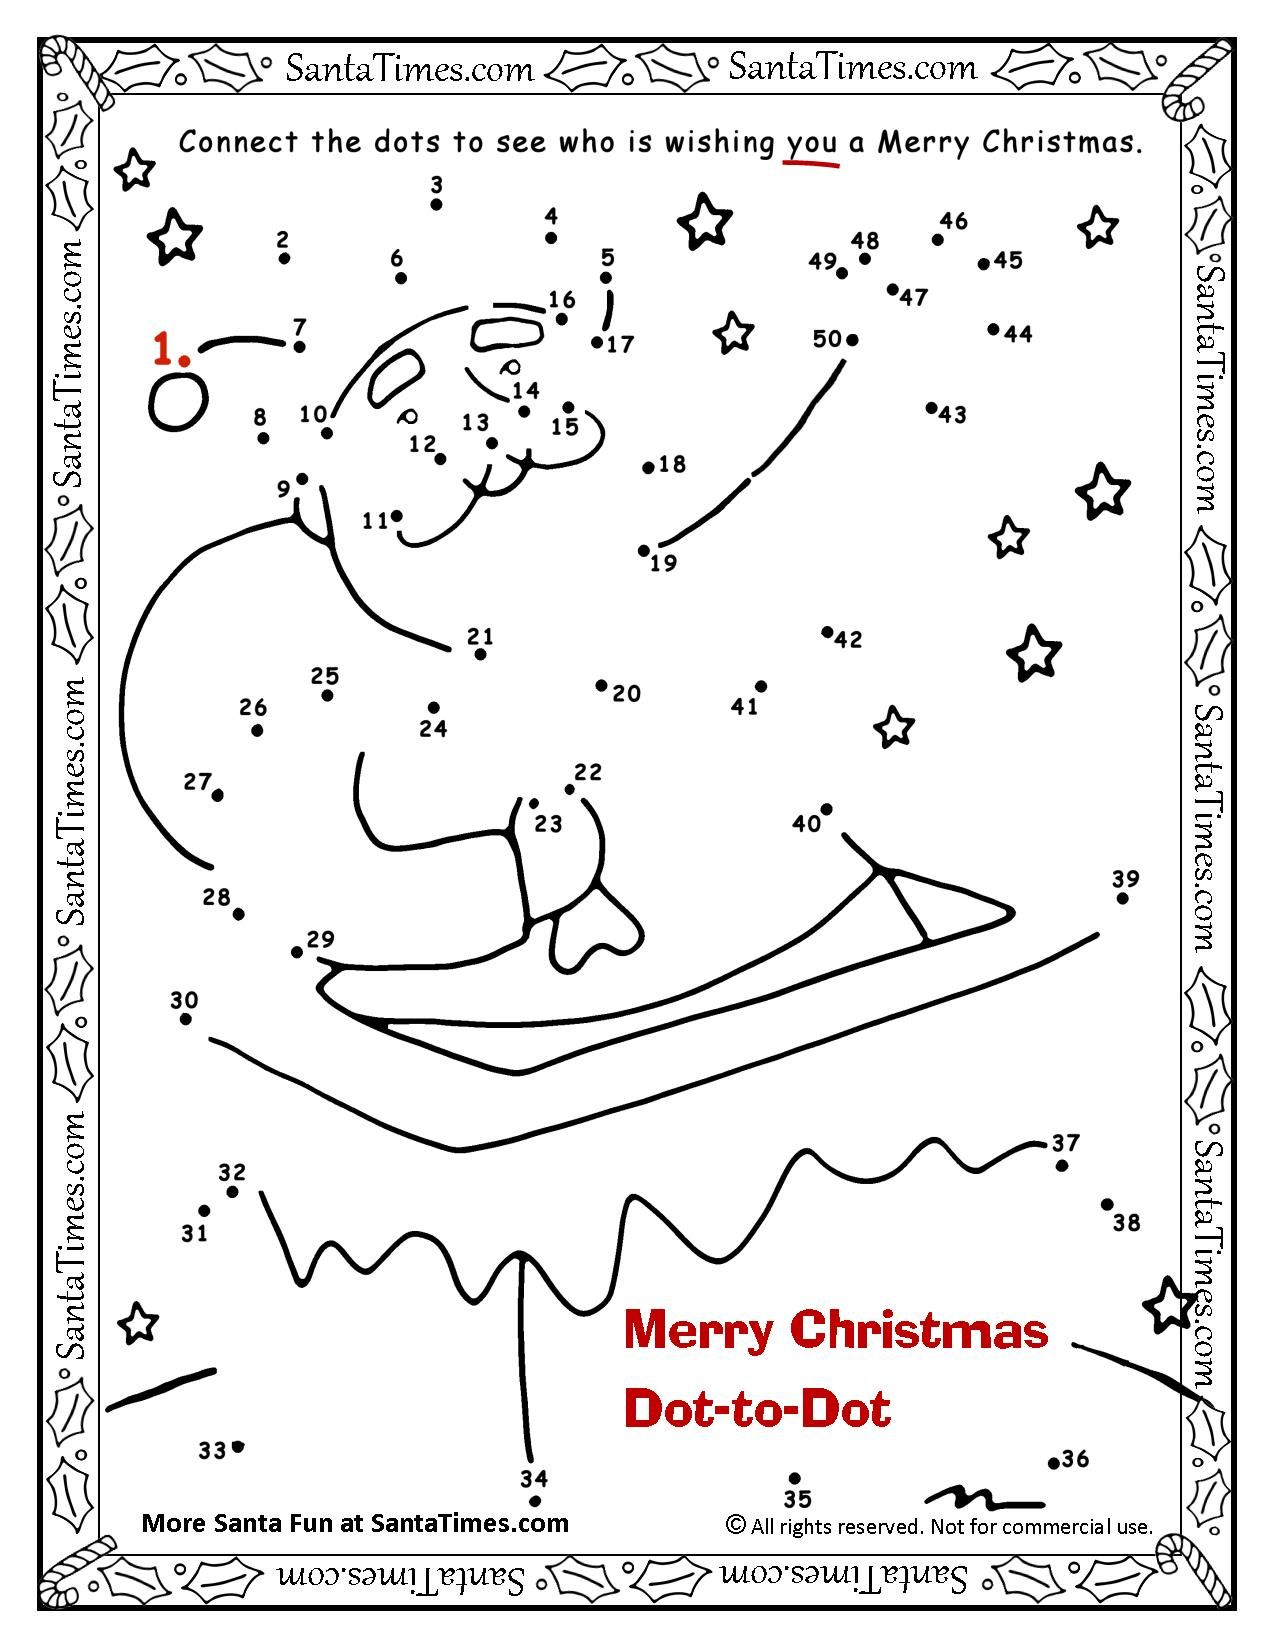 Merry Christmas Dot To Dot Connect The Dots To See Who Is